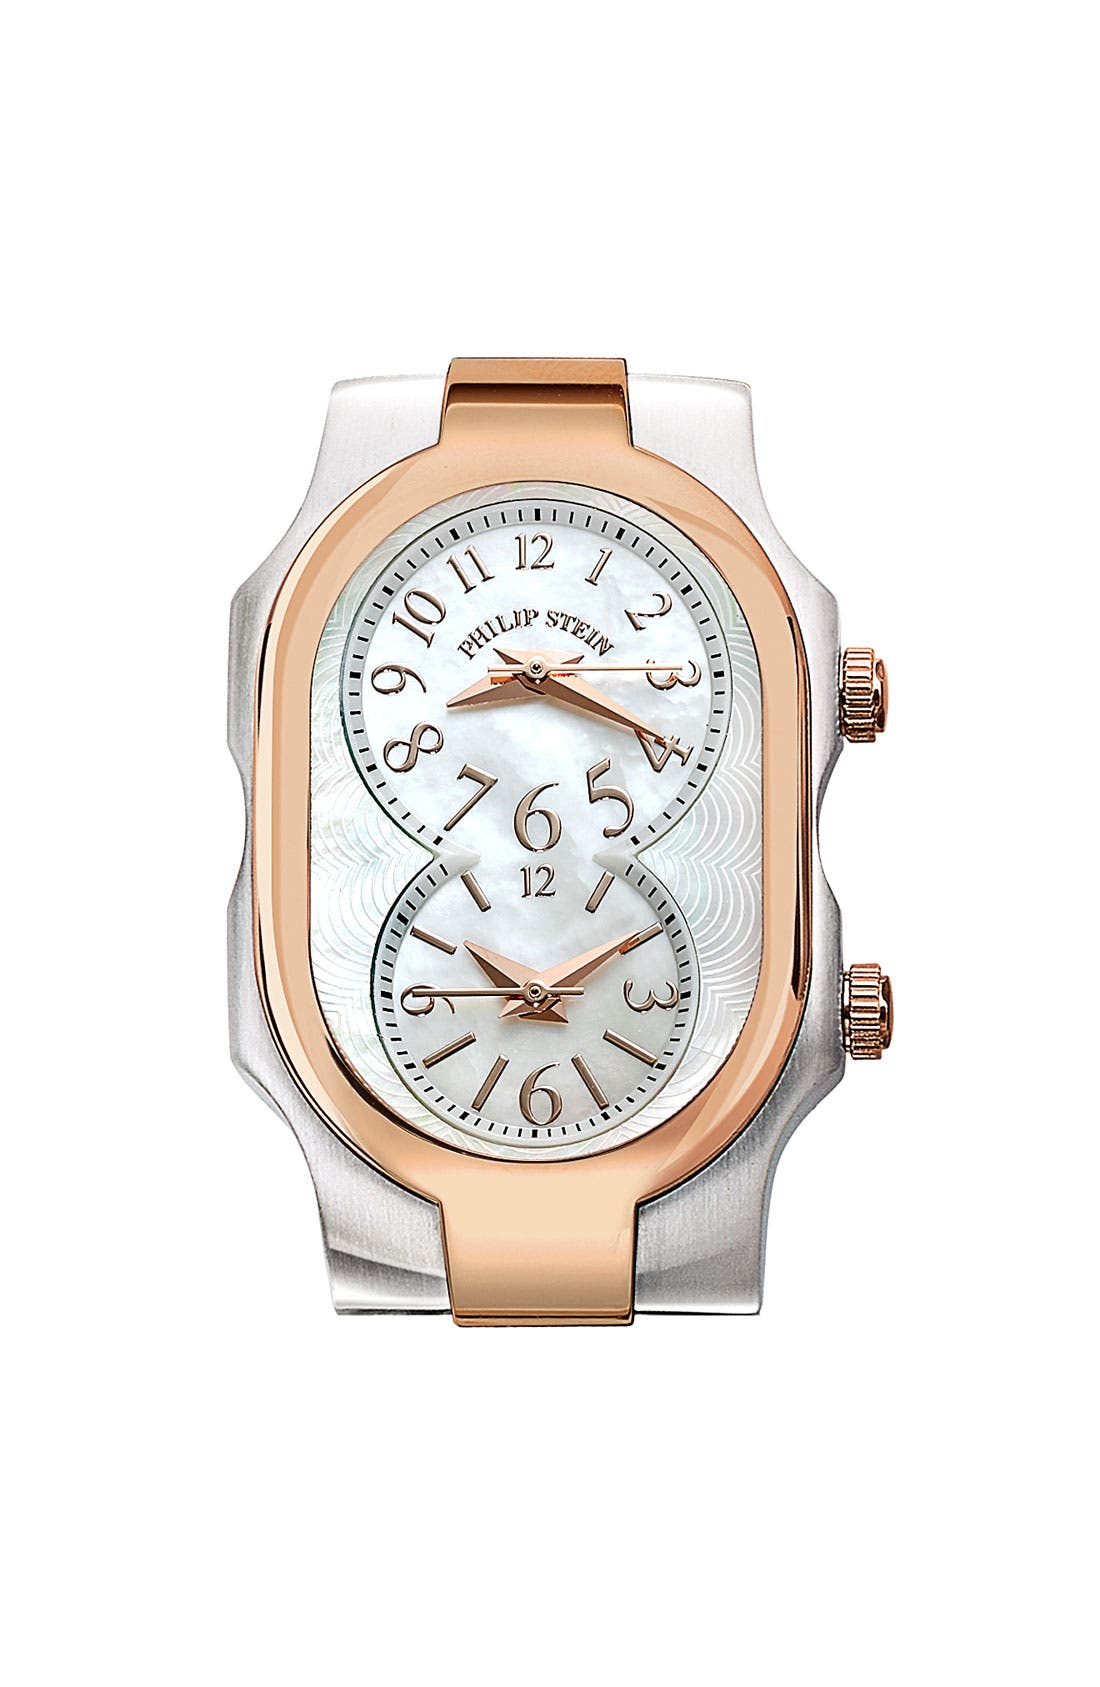 Main Image - Philip Stein® 'Signature' Small Two Tone Watch Case